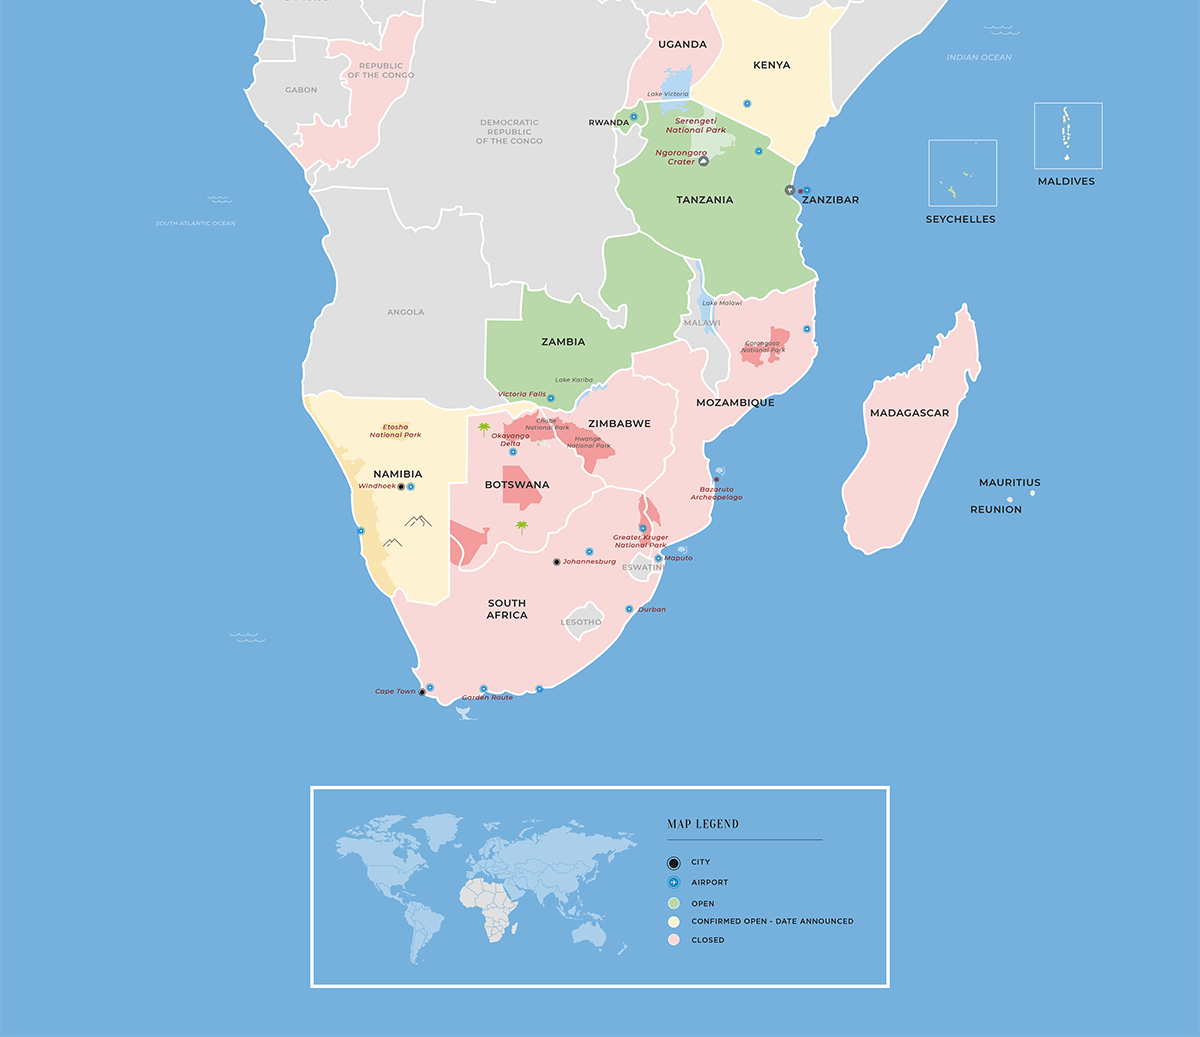 Map showing updates on travel restrictions in Africa